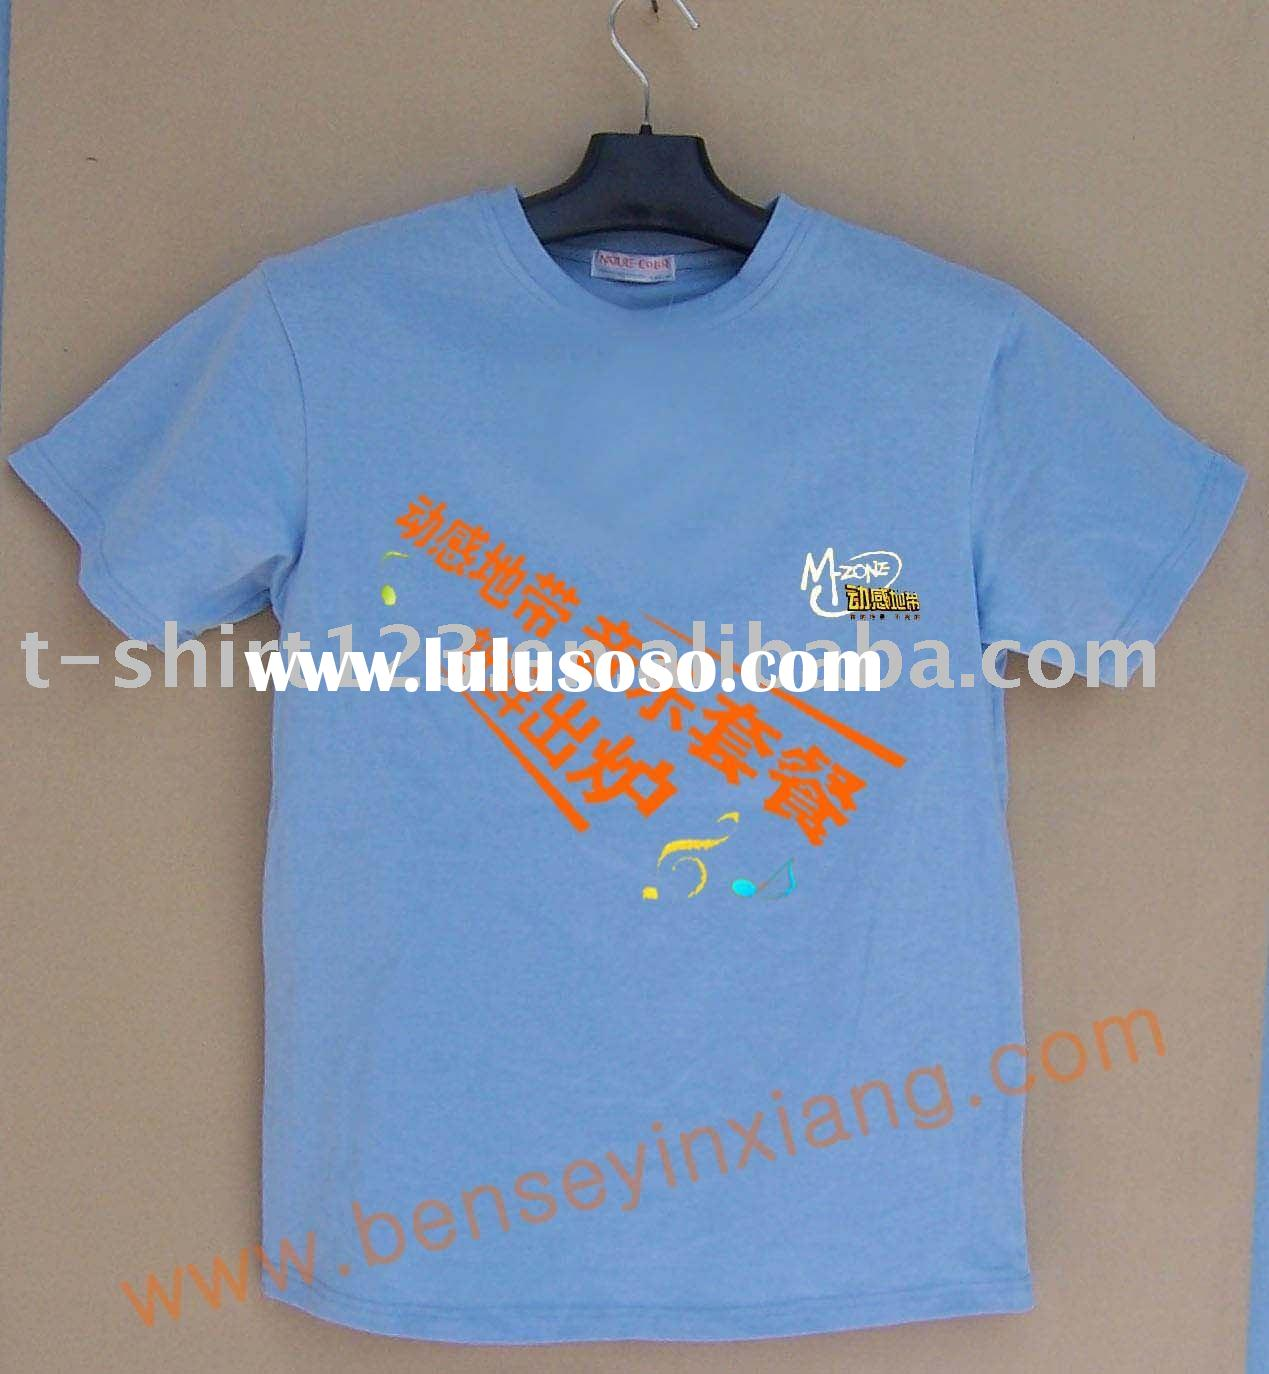 Printed wholesale t shirt printed wholesale t shirt for Printed t shirts in bulk